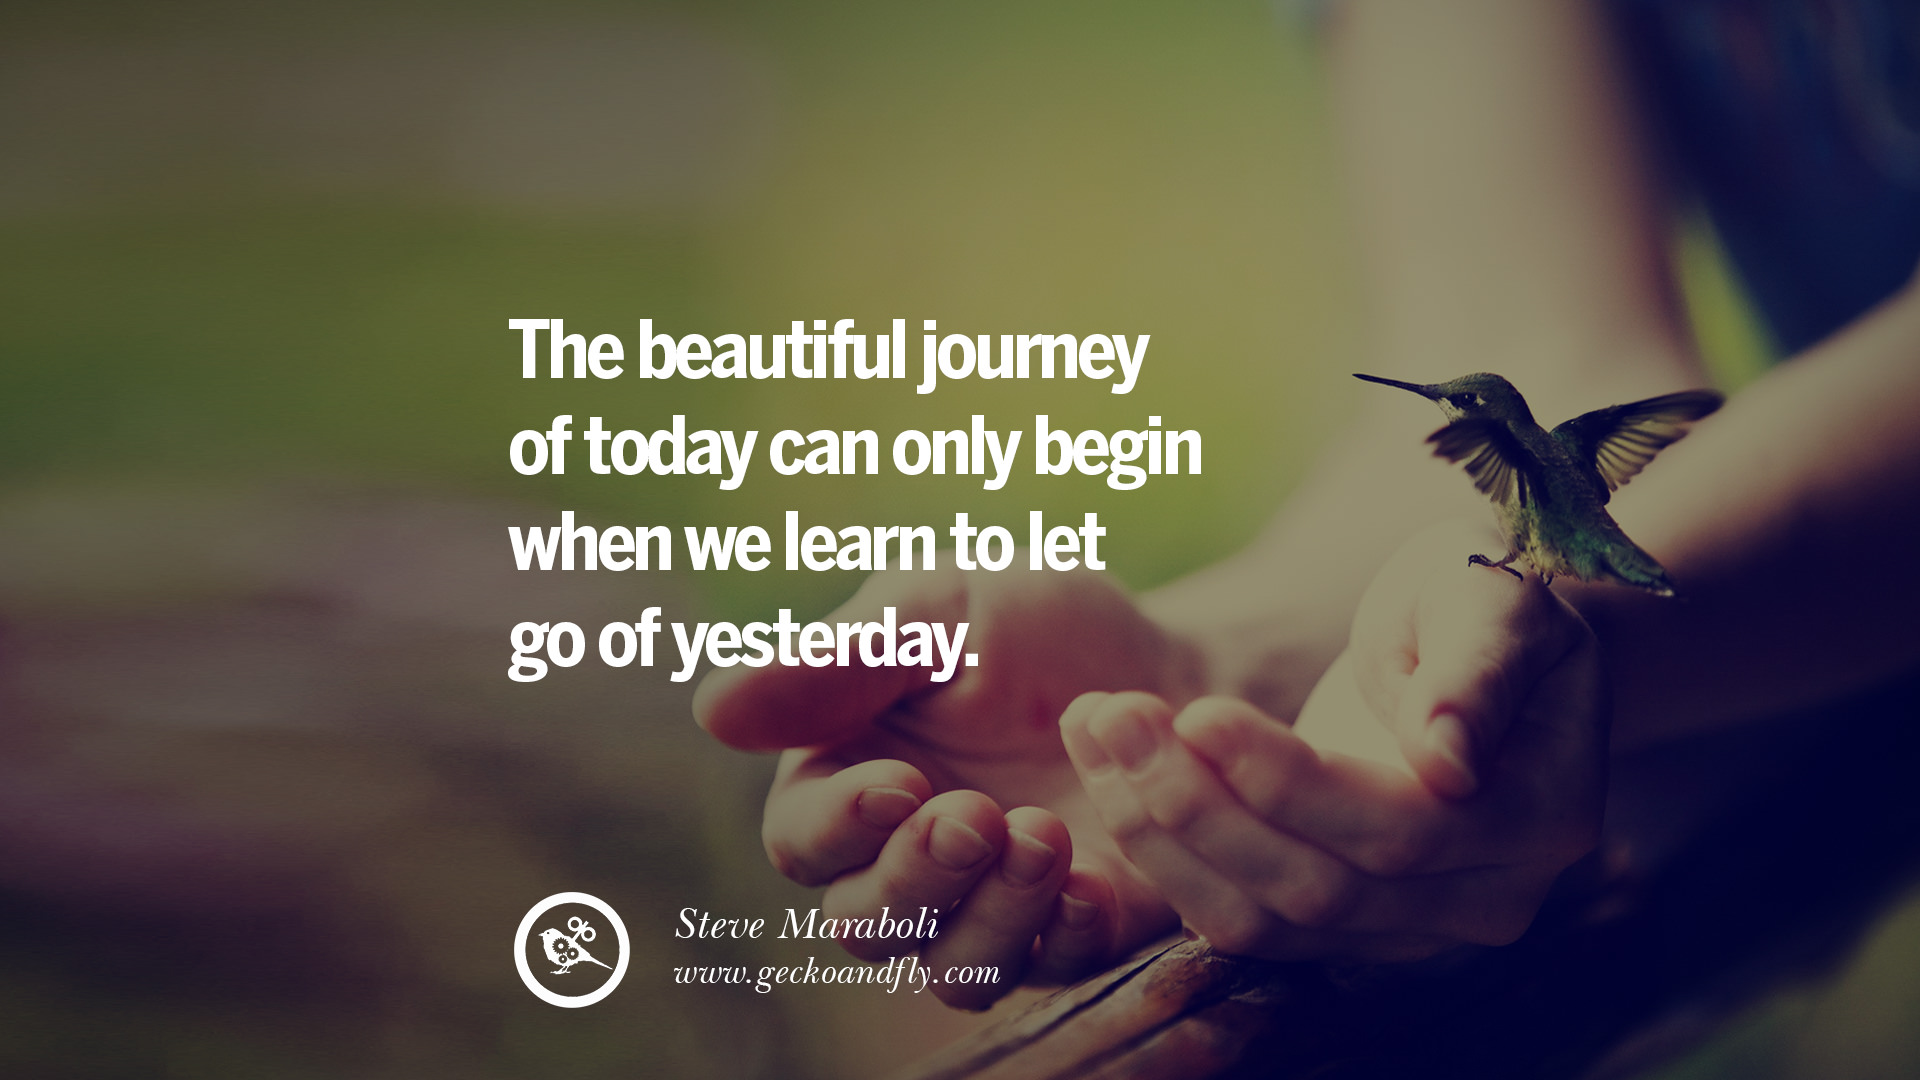 Quotes On Letting Go And Moving On